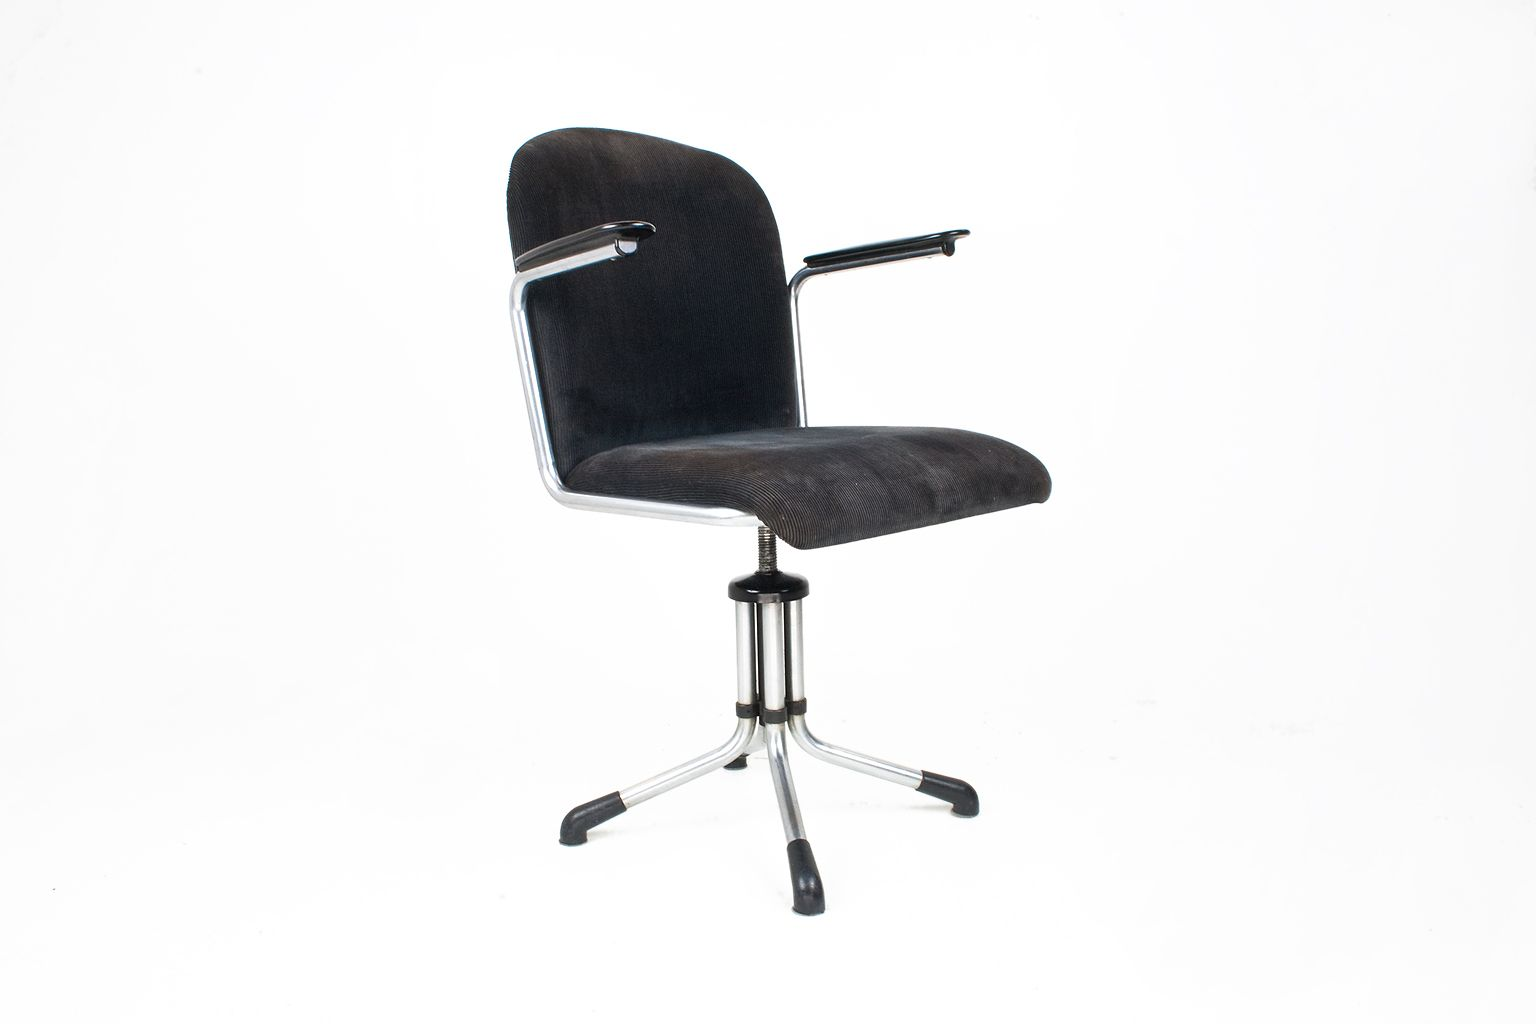 Dutch Industrial Model 356 Desk Chair by Willem Gispen for